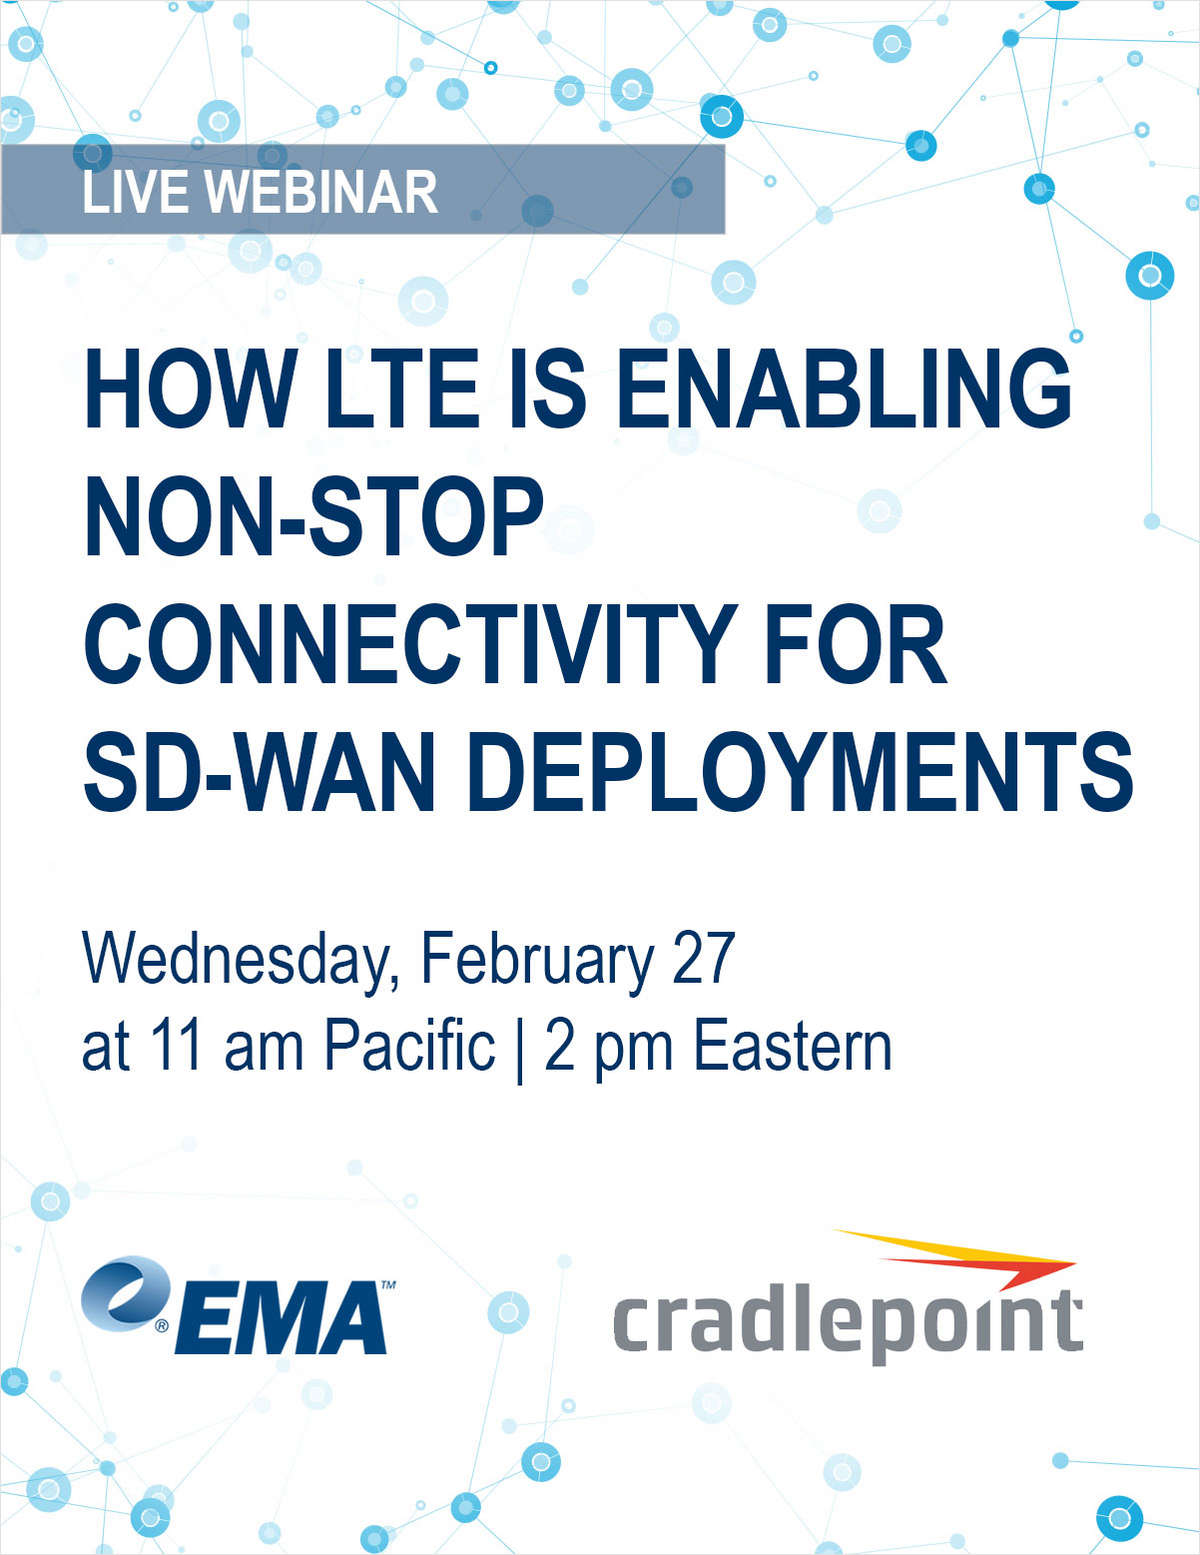 Live Webinar: How LTE is Enabling Non-Stop Connectivity for SD-WAN Deployments